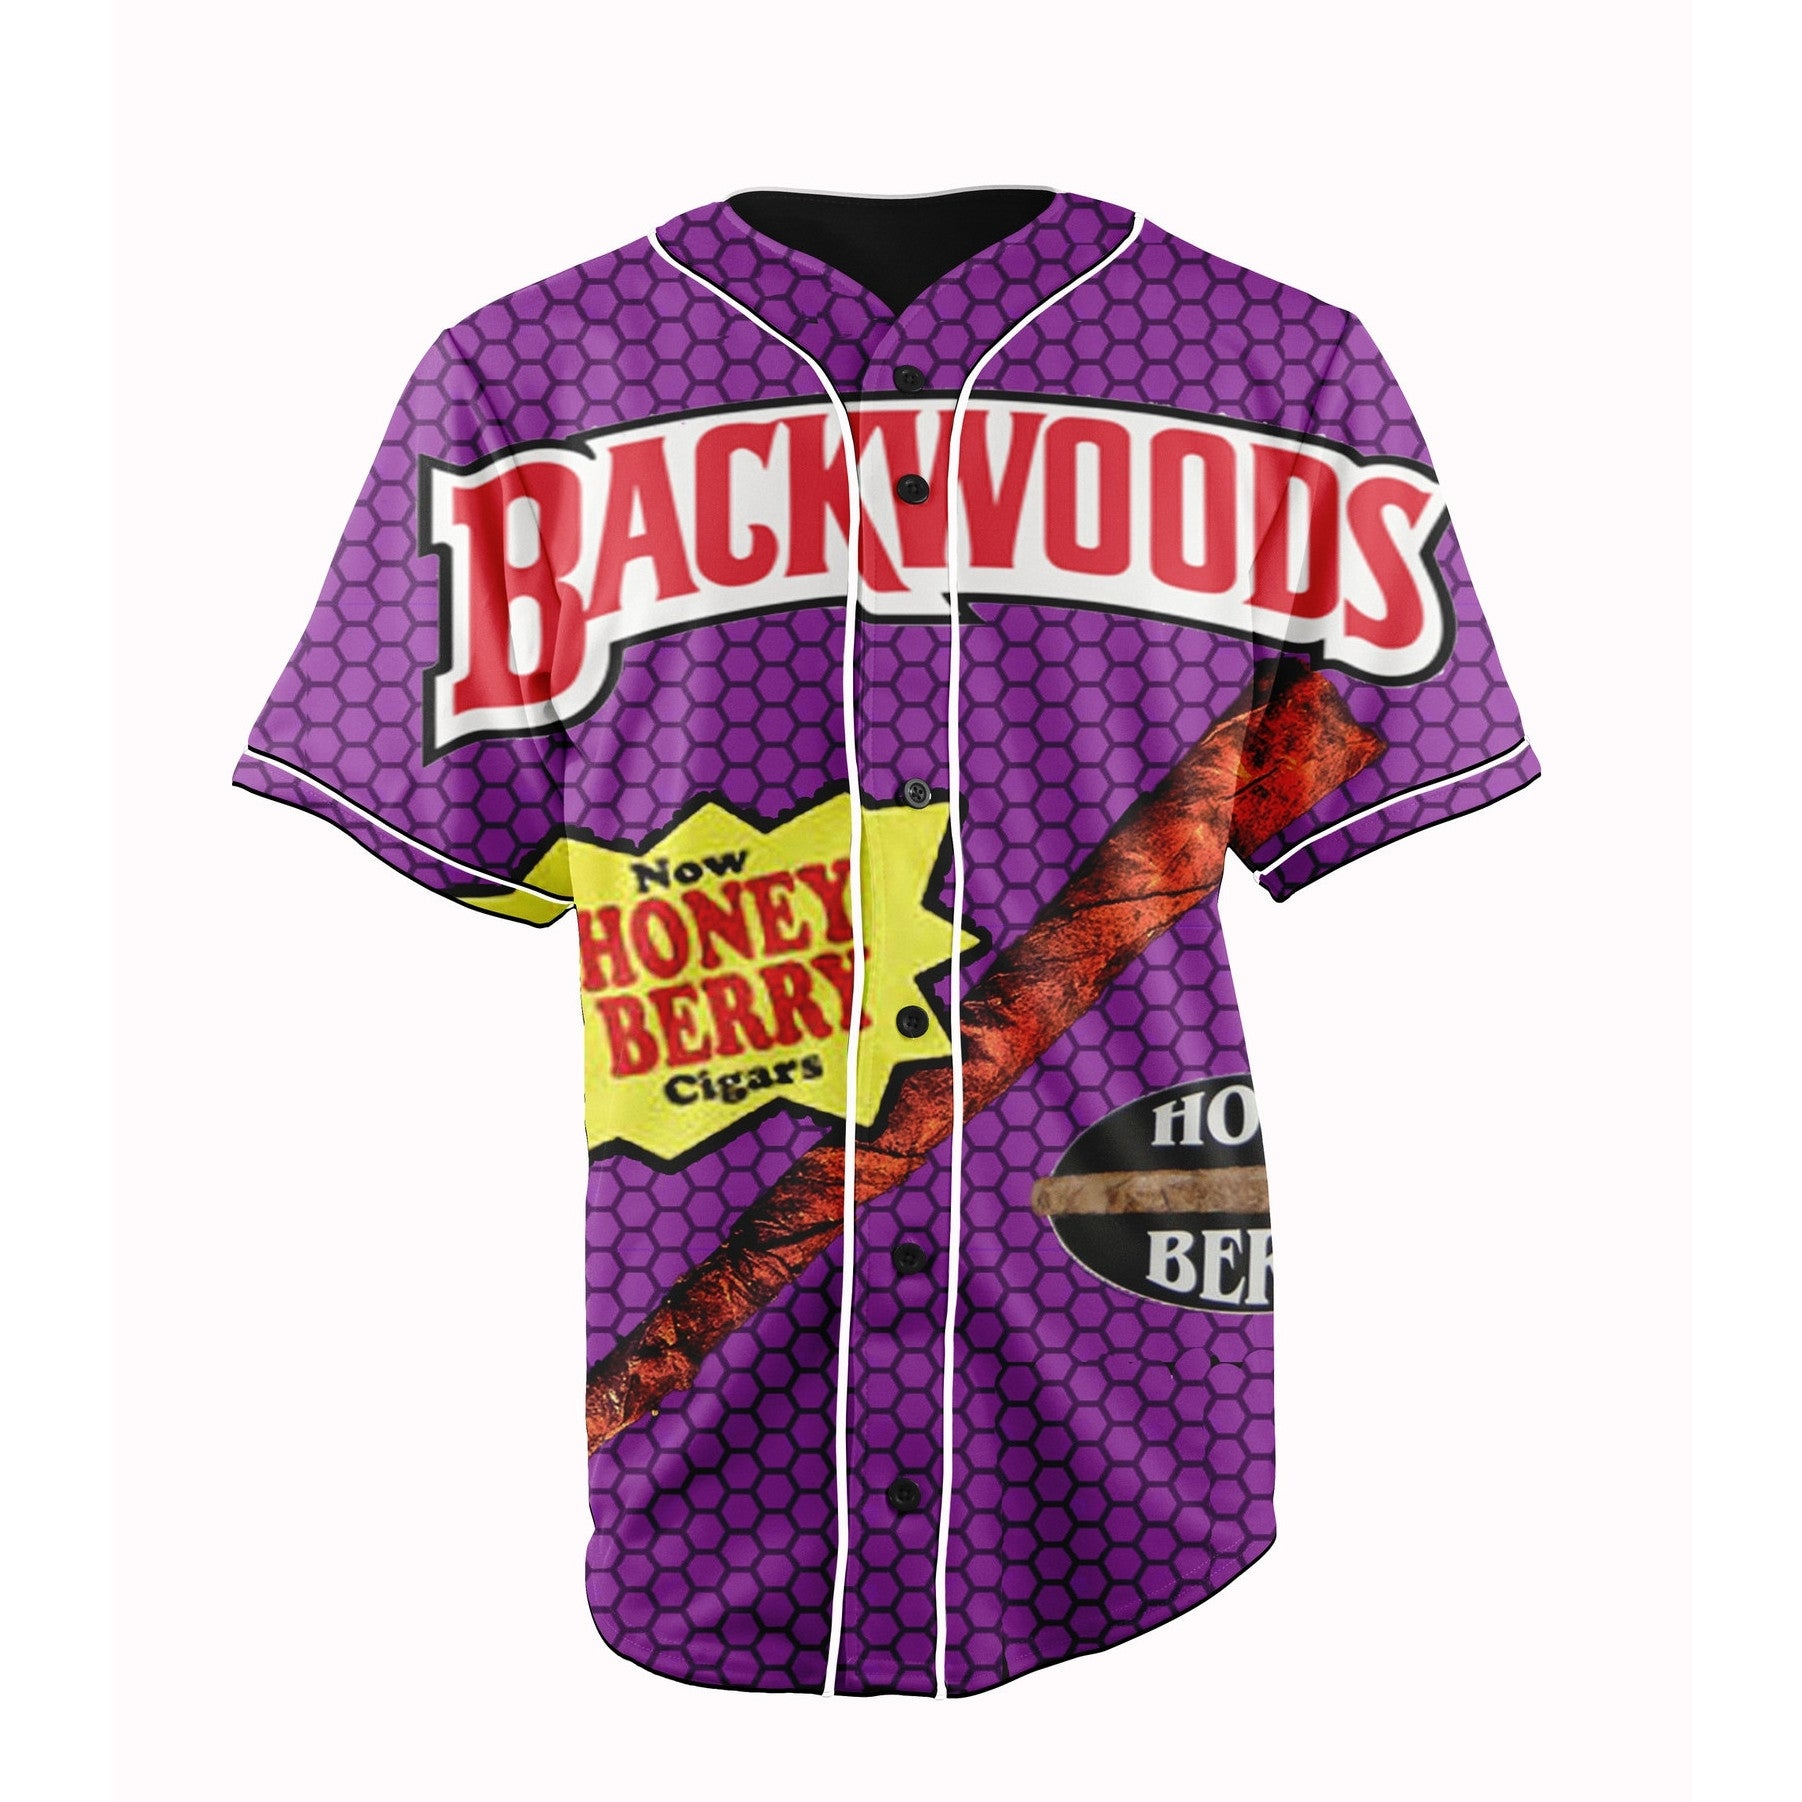 Backwoods Honey Berry Blunts Jersey